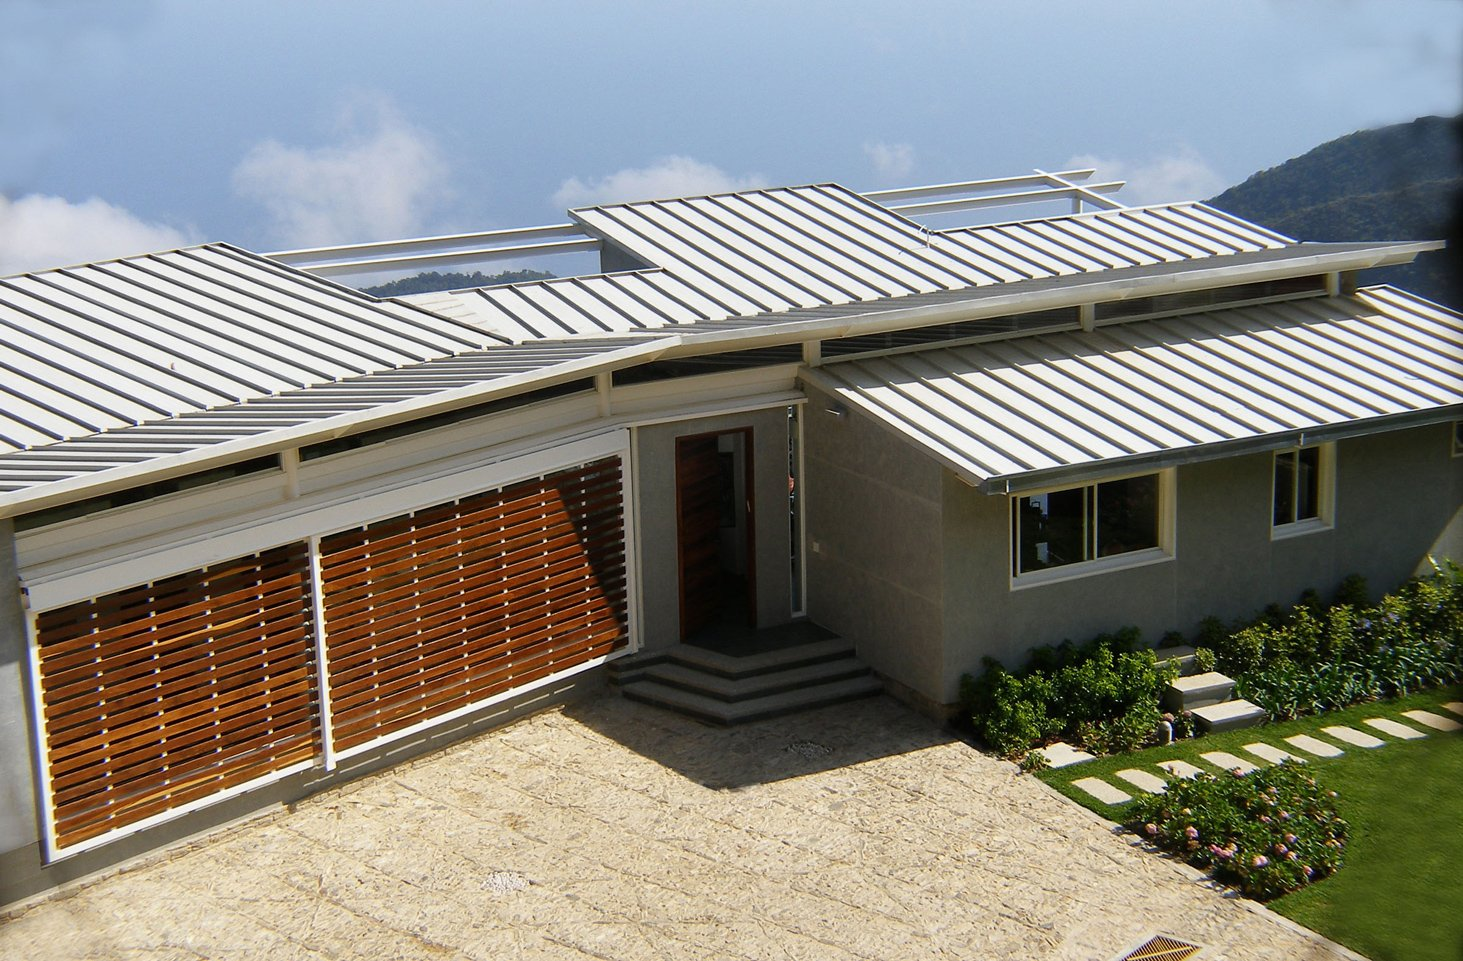 Exterior Architecture project in Galipan El Avila, Venezuela